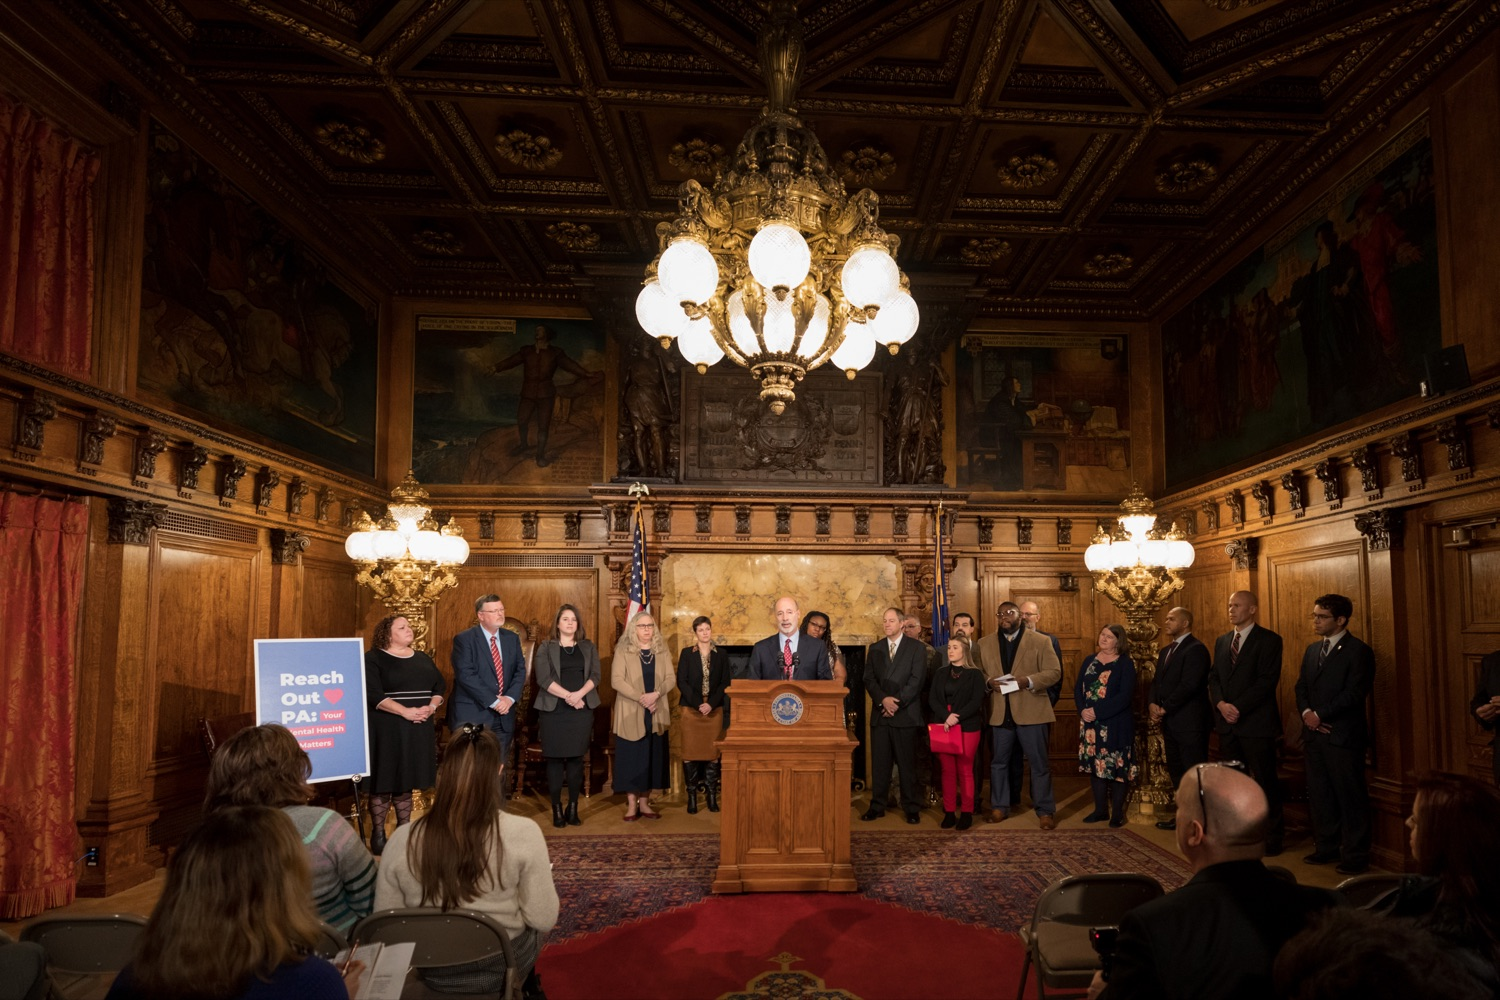 "<a href=""http://filesource.abacast.com/commonwealthofpa/photo/17694_GOV_Mental_Health_NK_006.JPG"" target=""_blank"">⇣ Download Photo<br></a>Pennsylvania Governor Tom Wolf speaks during a press conference inside the Governor's Reception Room at the State Capitol building in Harrisburg on Thursday, January 2, 2020. Governor Wolf announced a focused all-agency effort and anti-stigma campaign, Reach Out PA: Your Mental Health Matters, aimed at expanding resources and the states comprehensive support of mental health and related health care priorities in Pennsylvania."